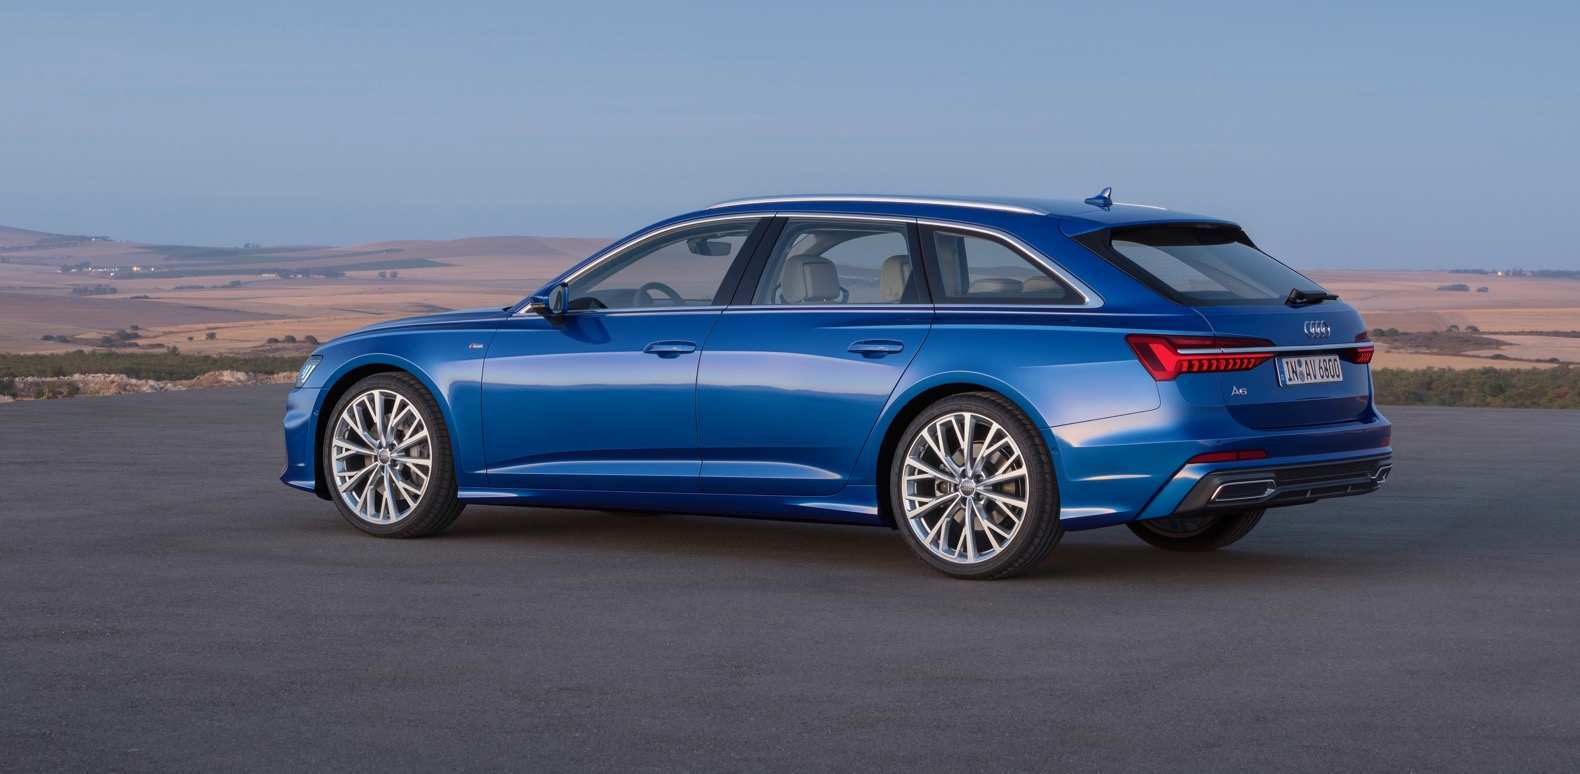 92 Great 2019 Audi Wagon Usa Overview by 2019 Audi Wagon Usa